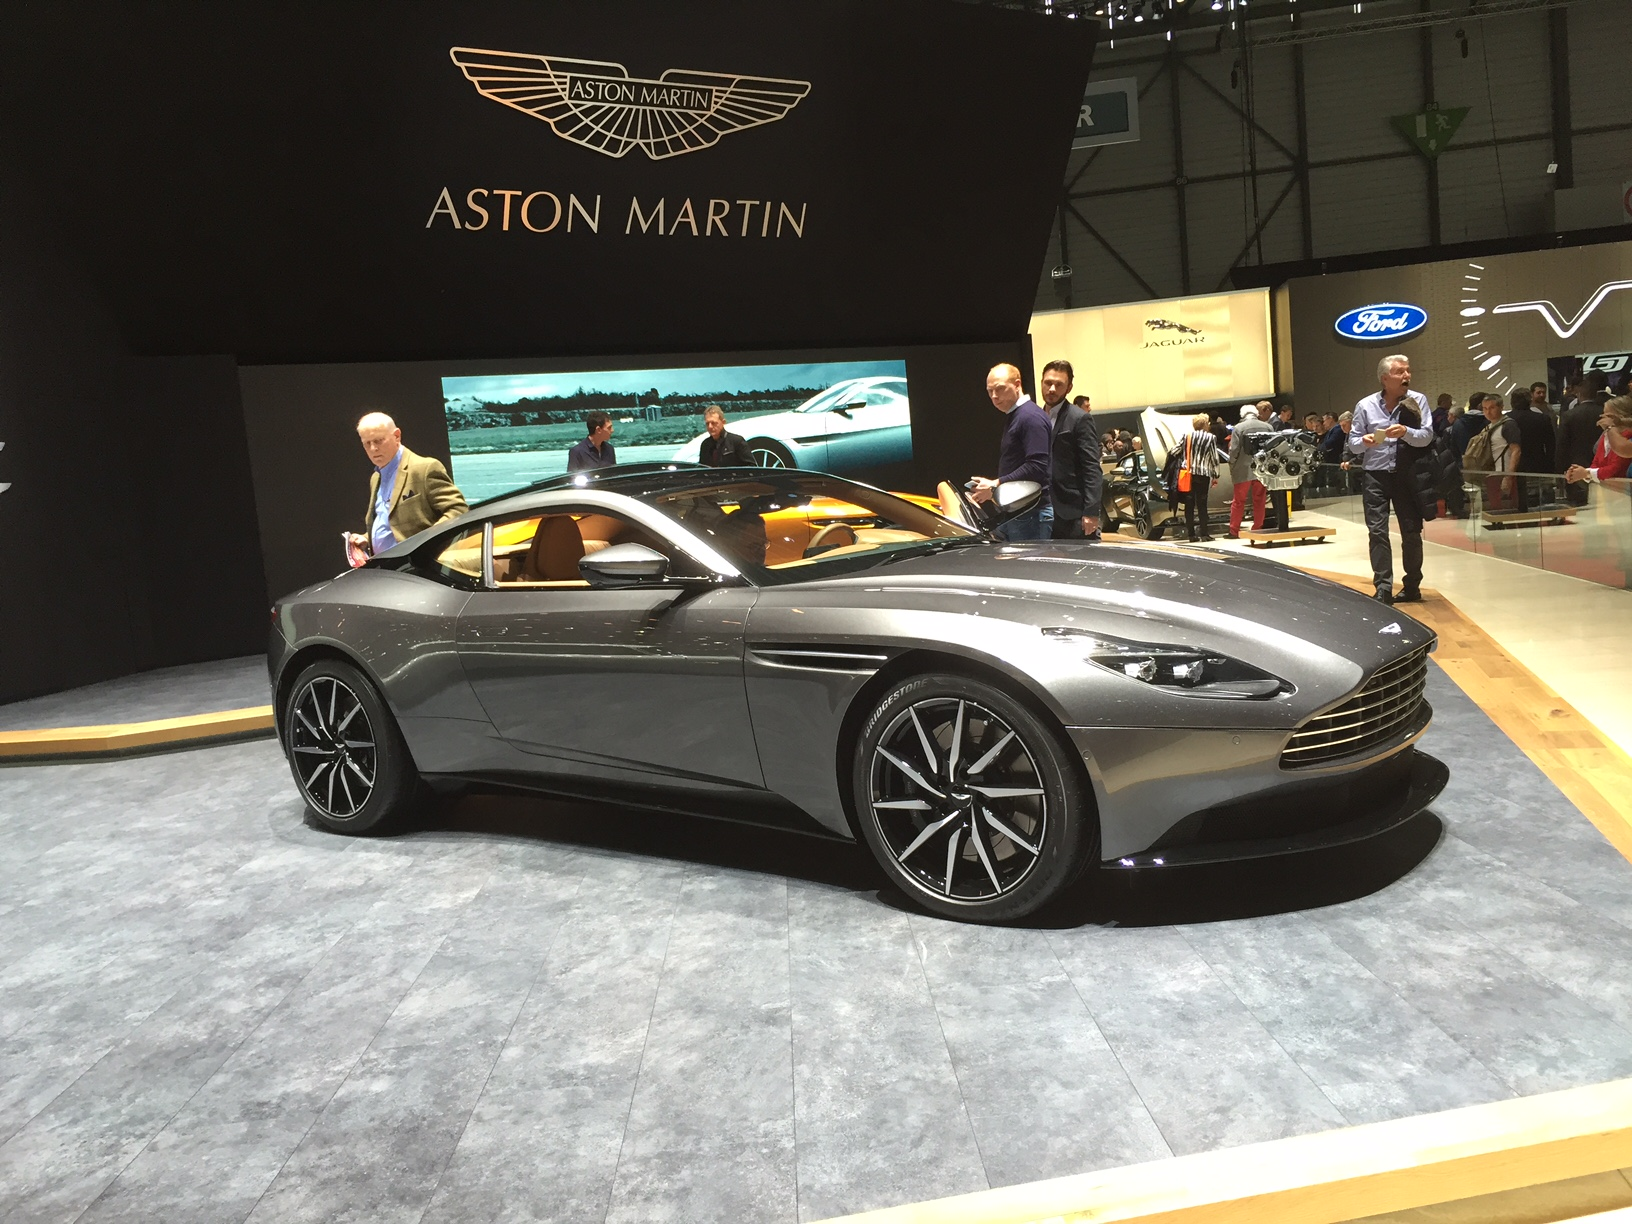 The new Aston Martin DB11 looks ominous from the side